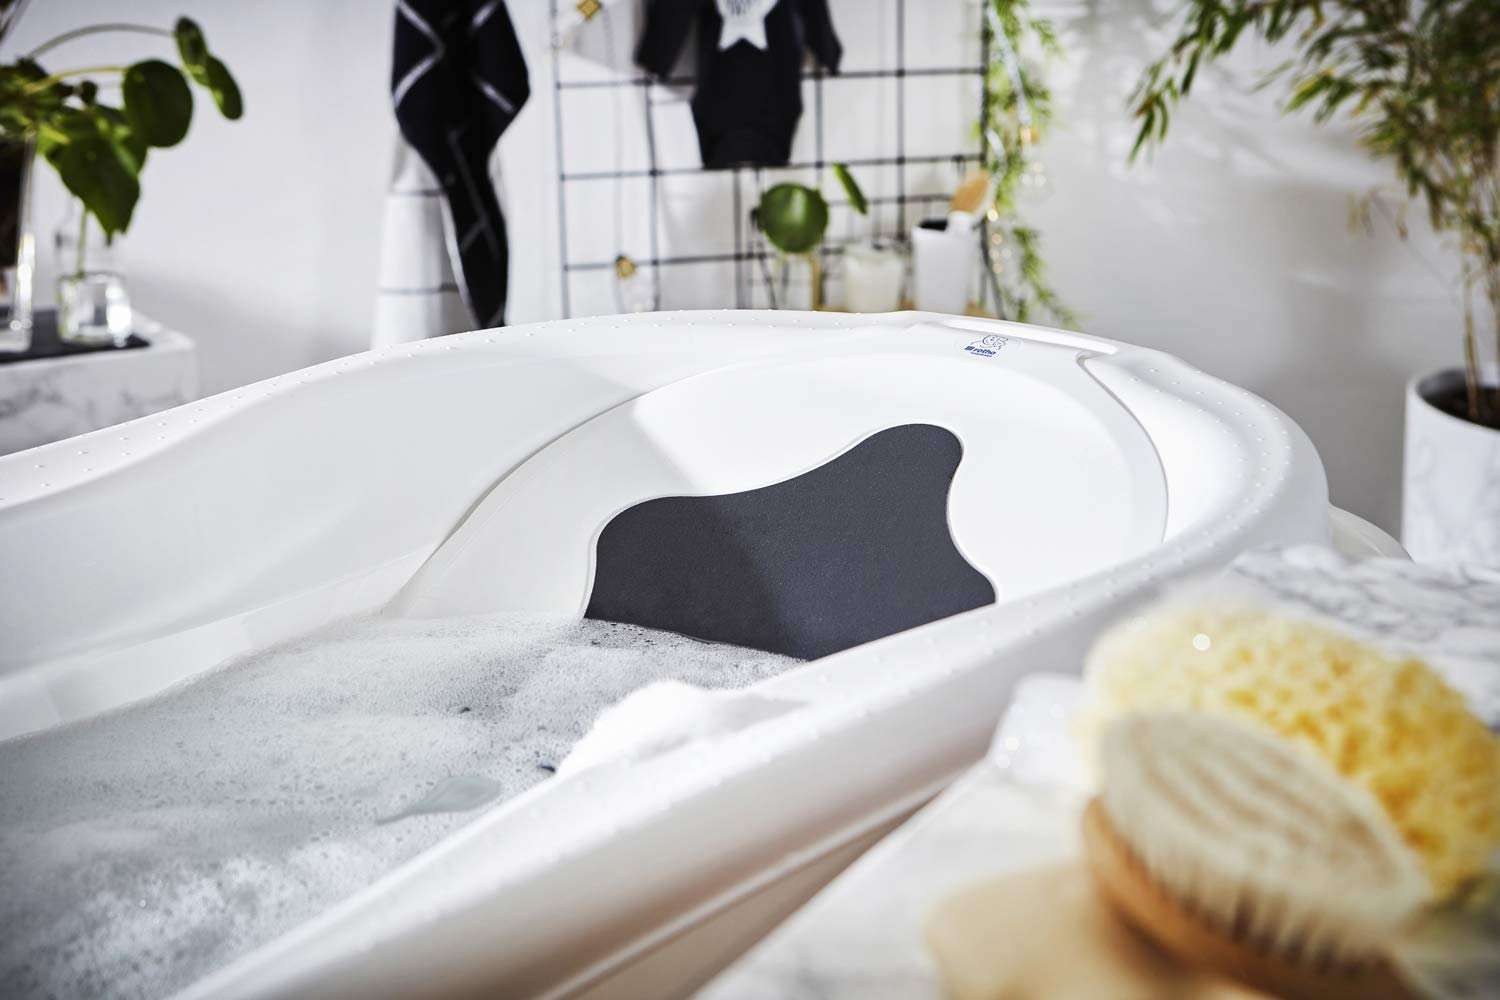 Rotho Babydesign Bath Tub Insert With Anti-Slip Mat TOP//TOP Xtra 205030001 White 0-6 Months